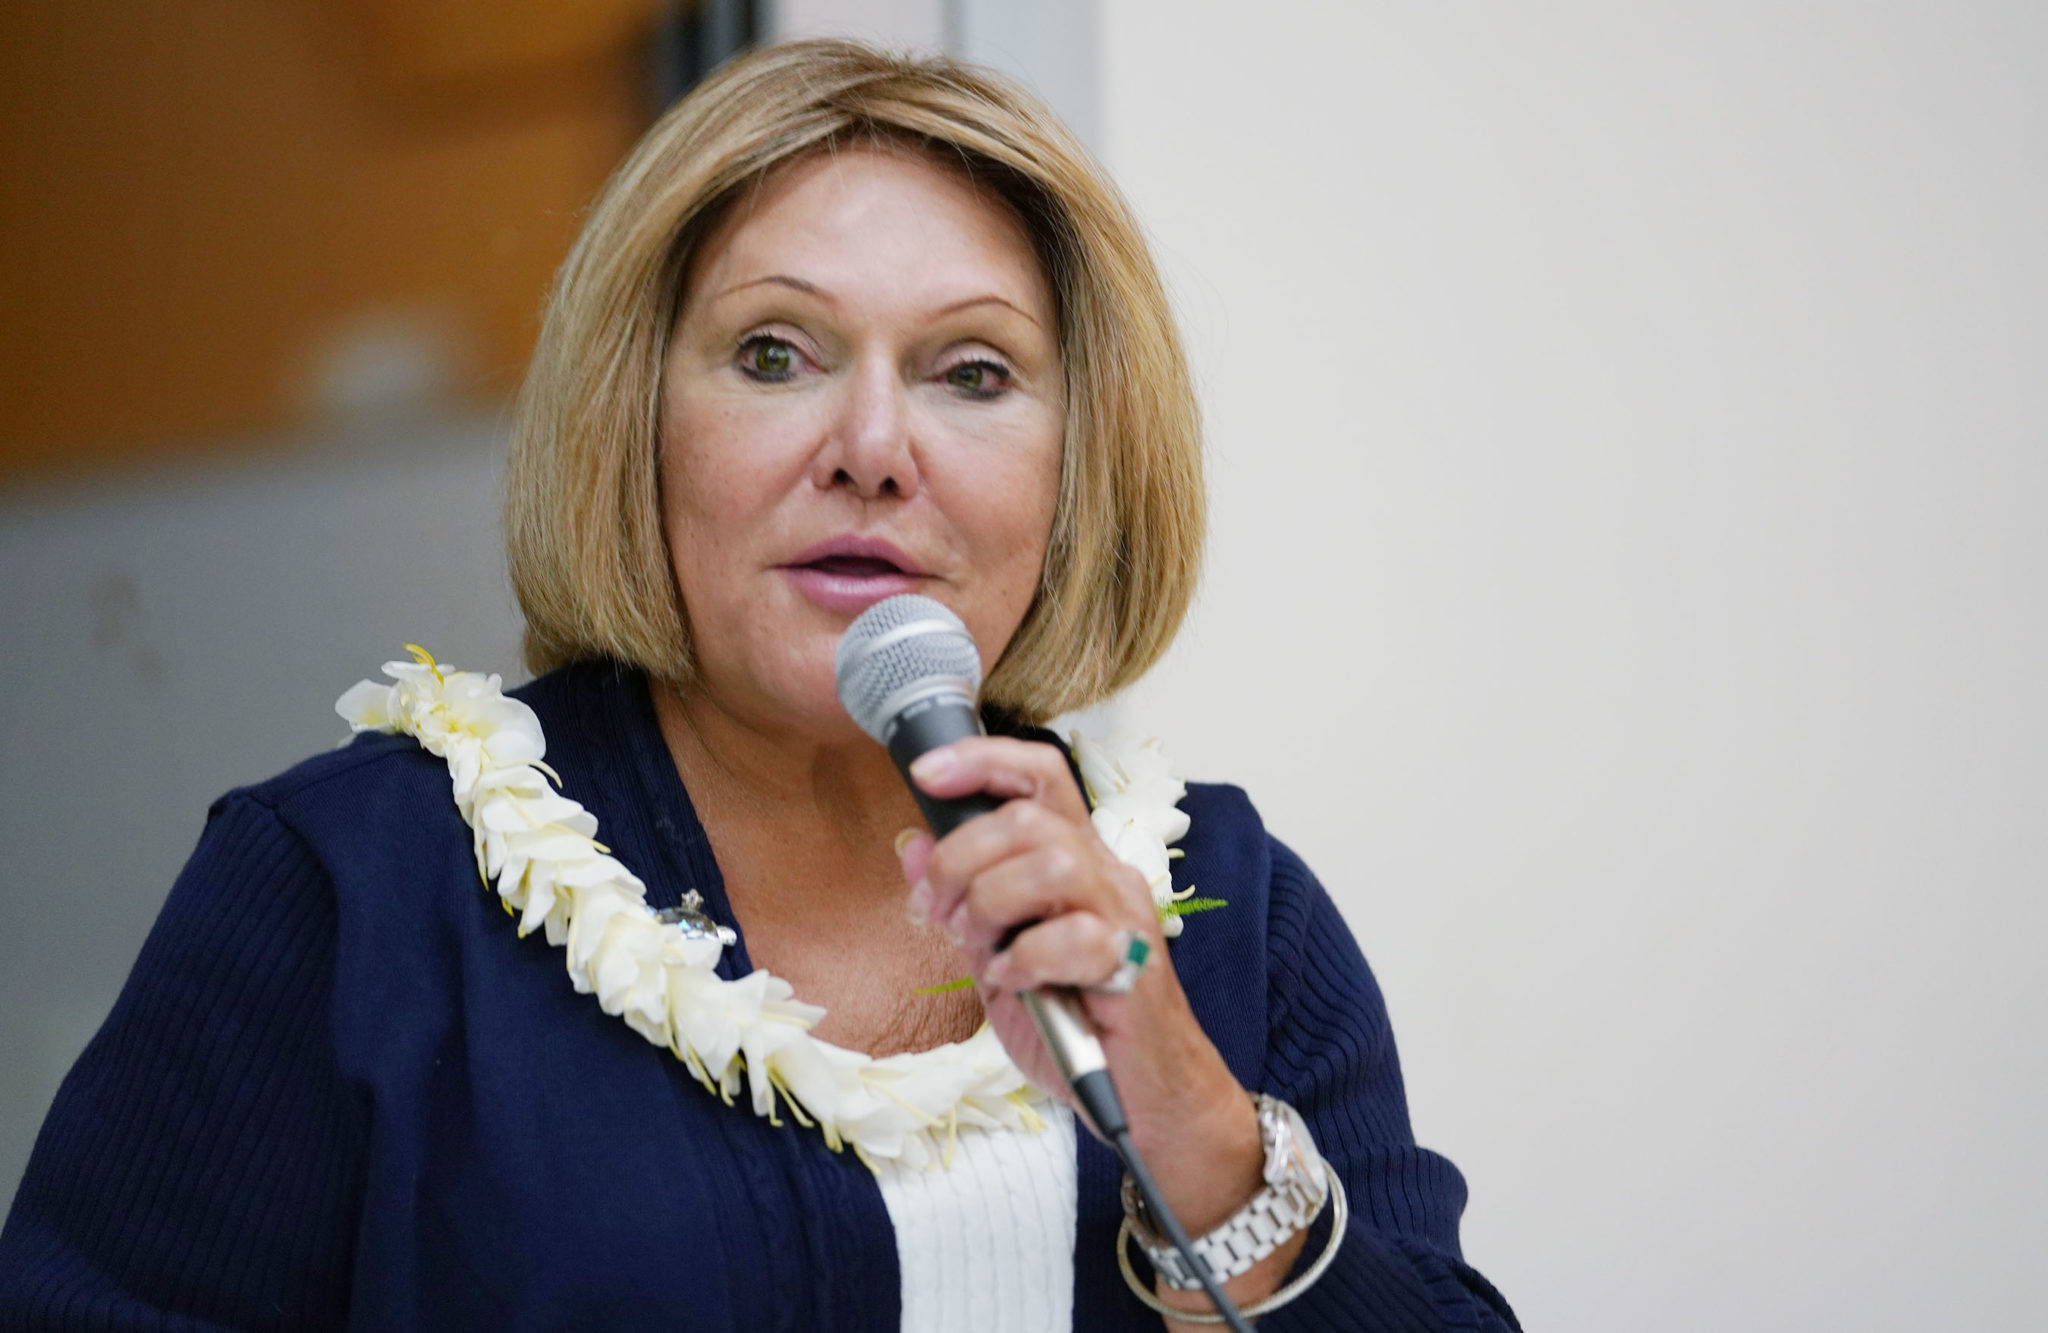 OHA Trustee Rowena Akana OHA candidate forum held at Windward Community College.